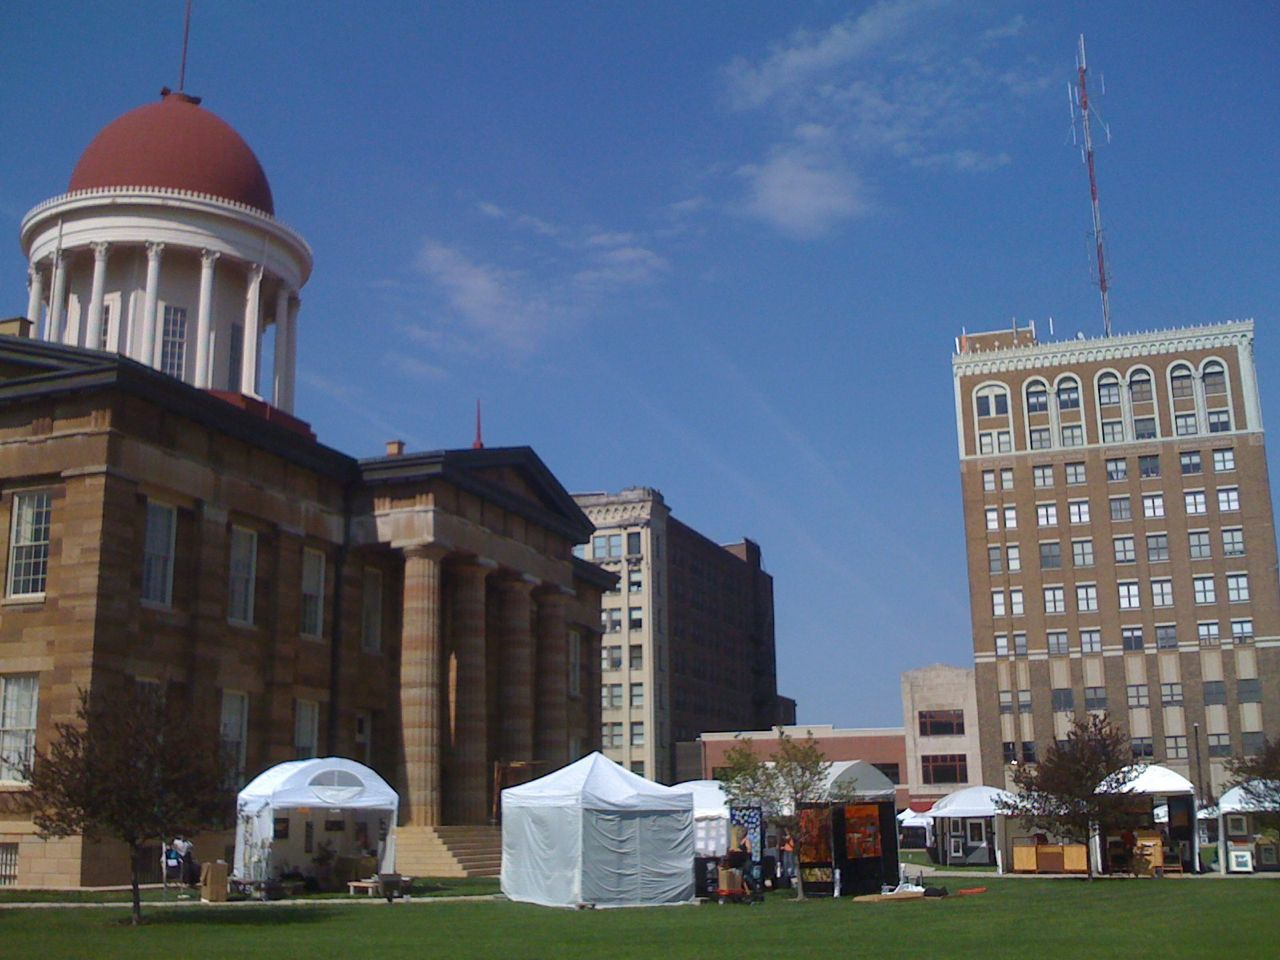 Old Capitol Art Fair, Springfield IL